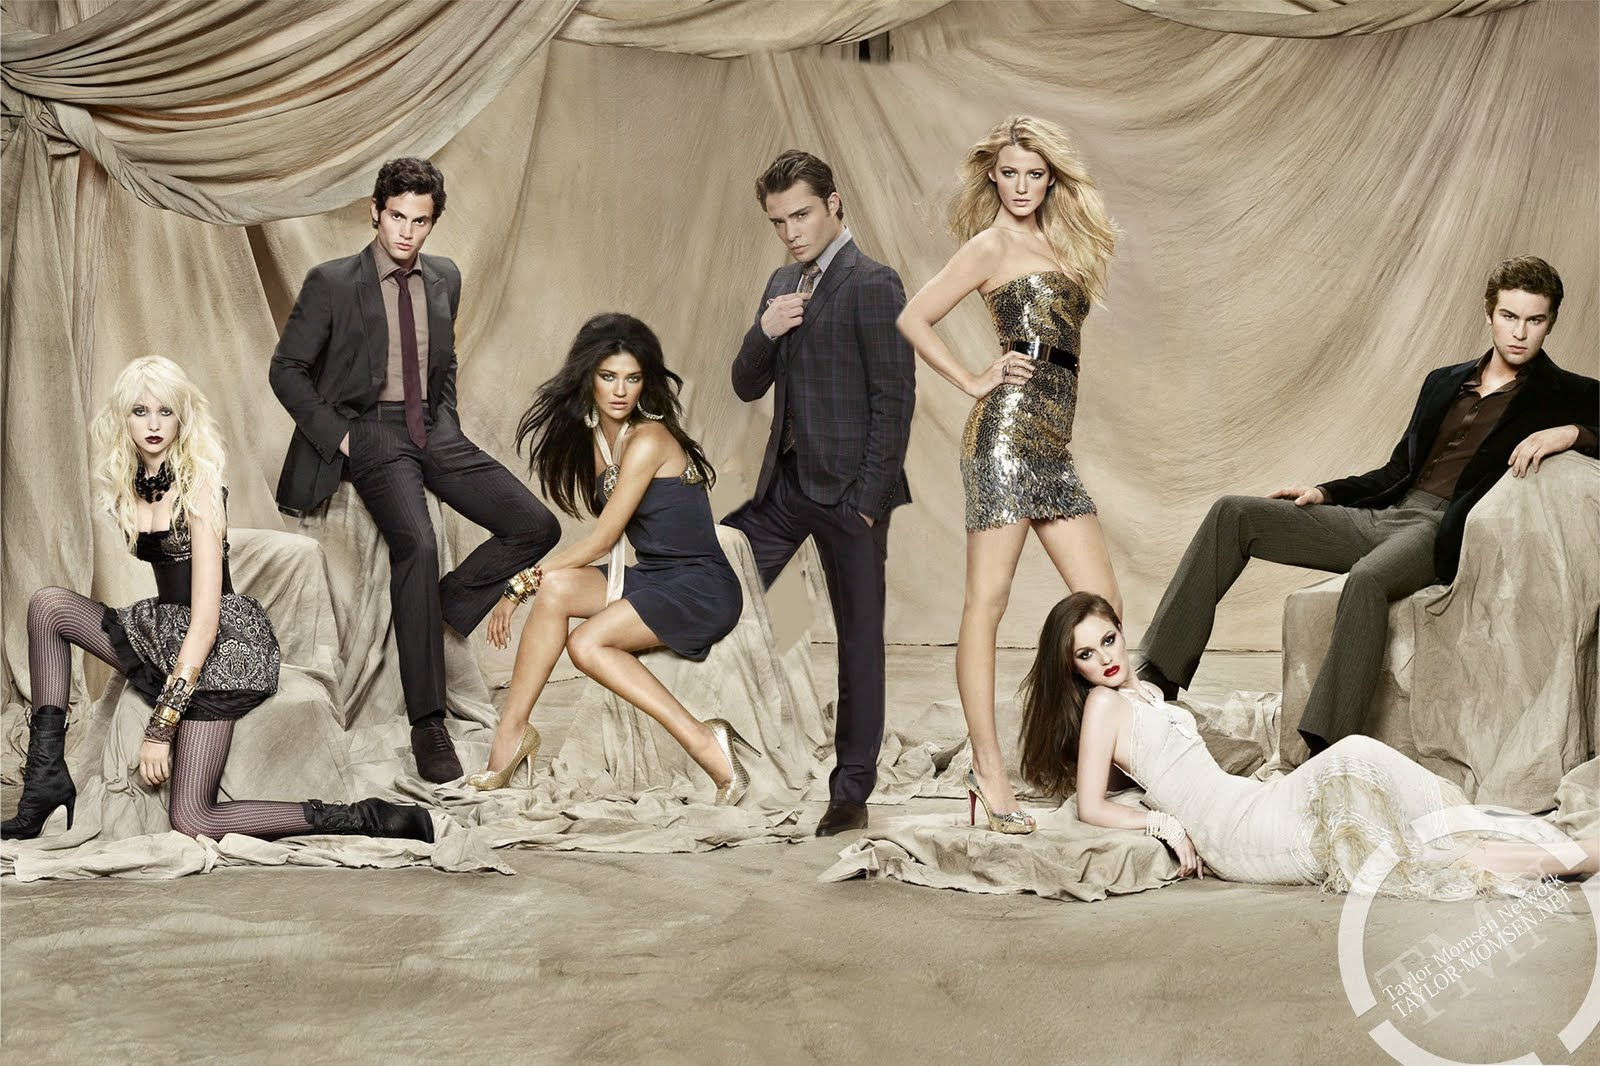 Main article gossip girl season 4 season four s main mystery revolves